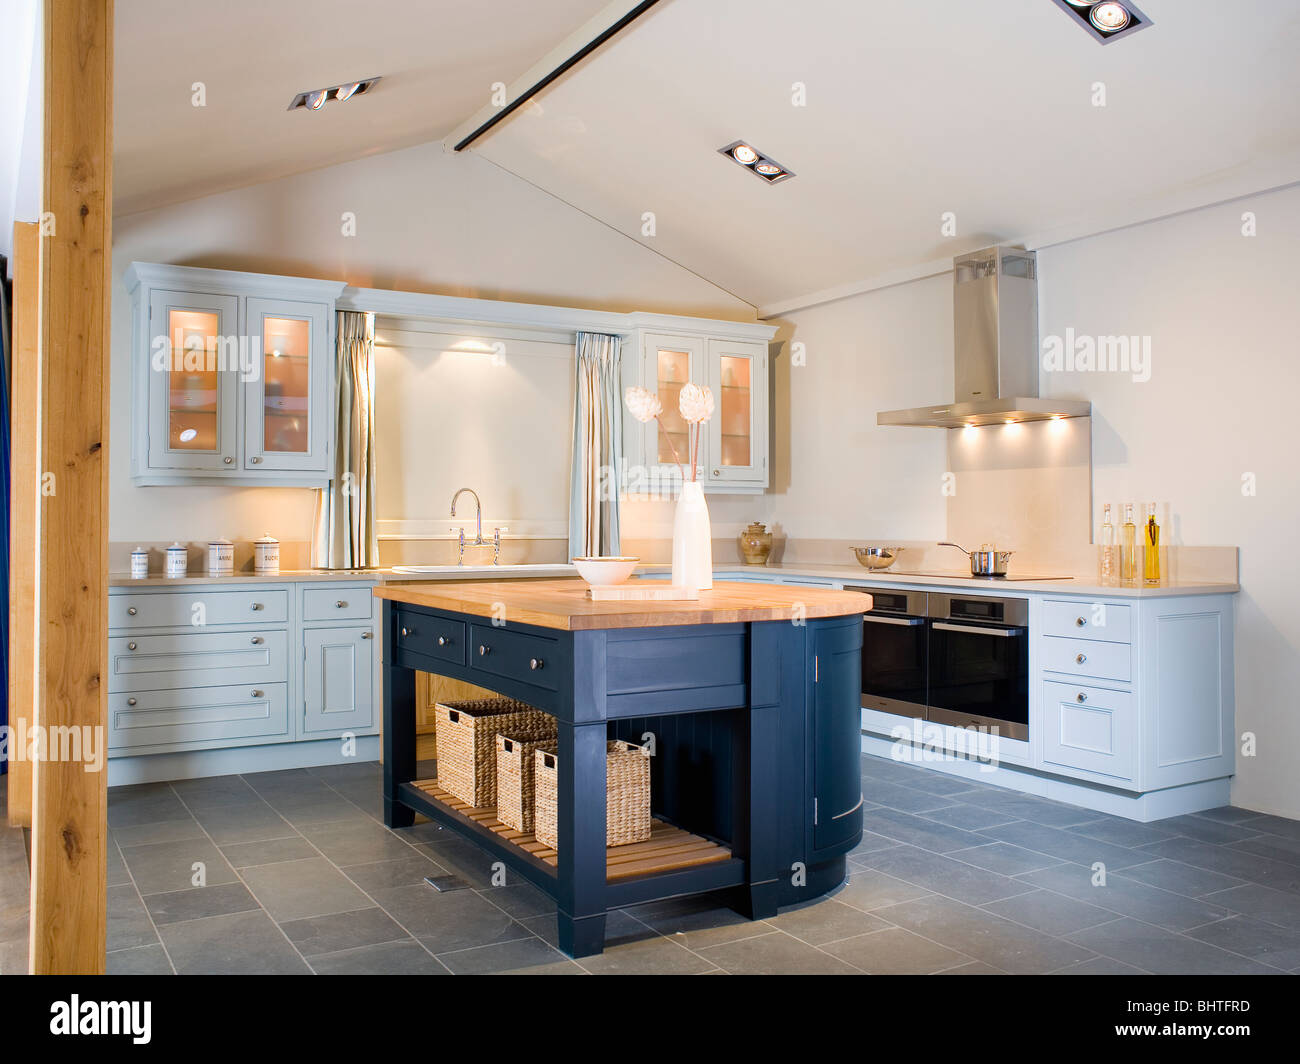 Dark Blue Island Unit And Slate Flooring In Modern Kitchen With Pale Blue  Fitted Units